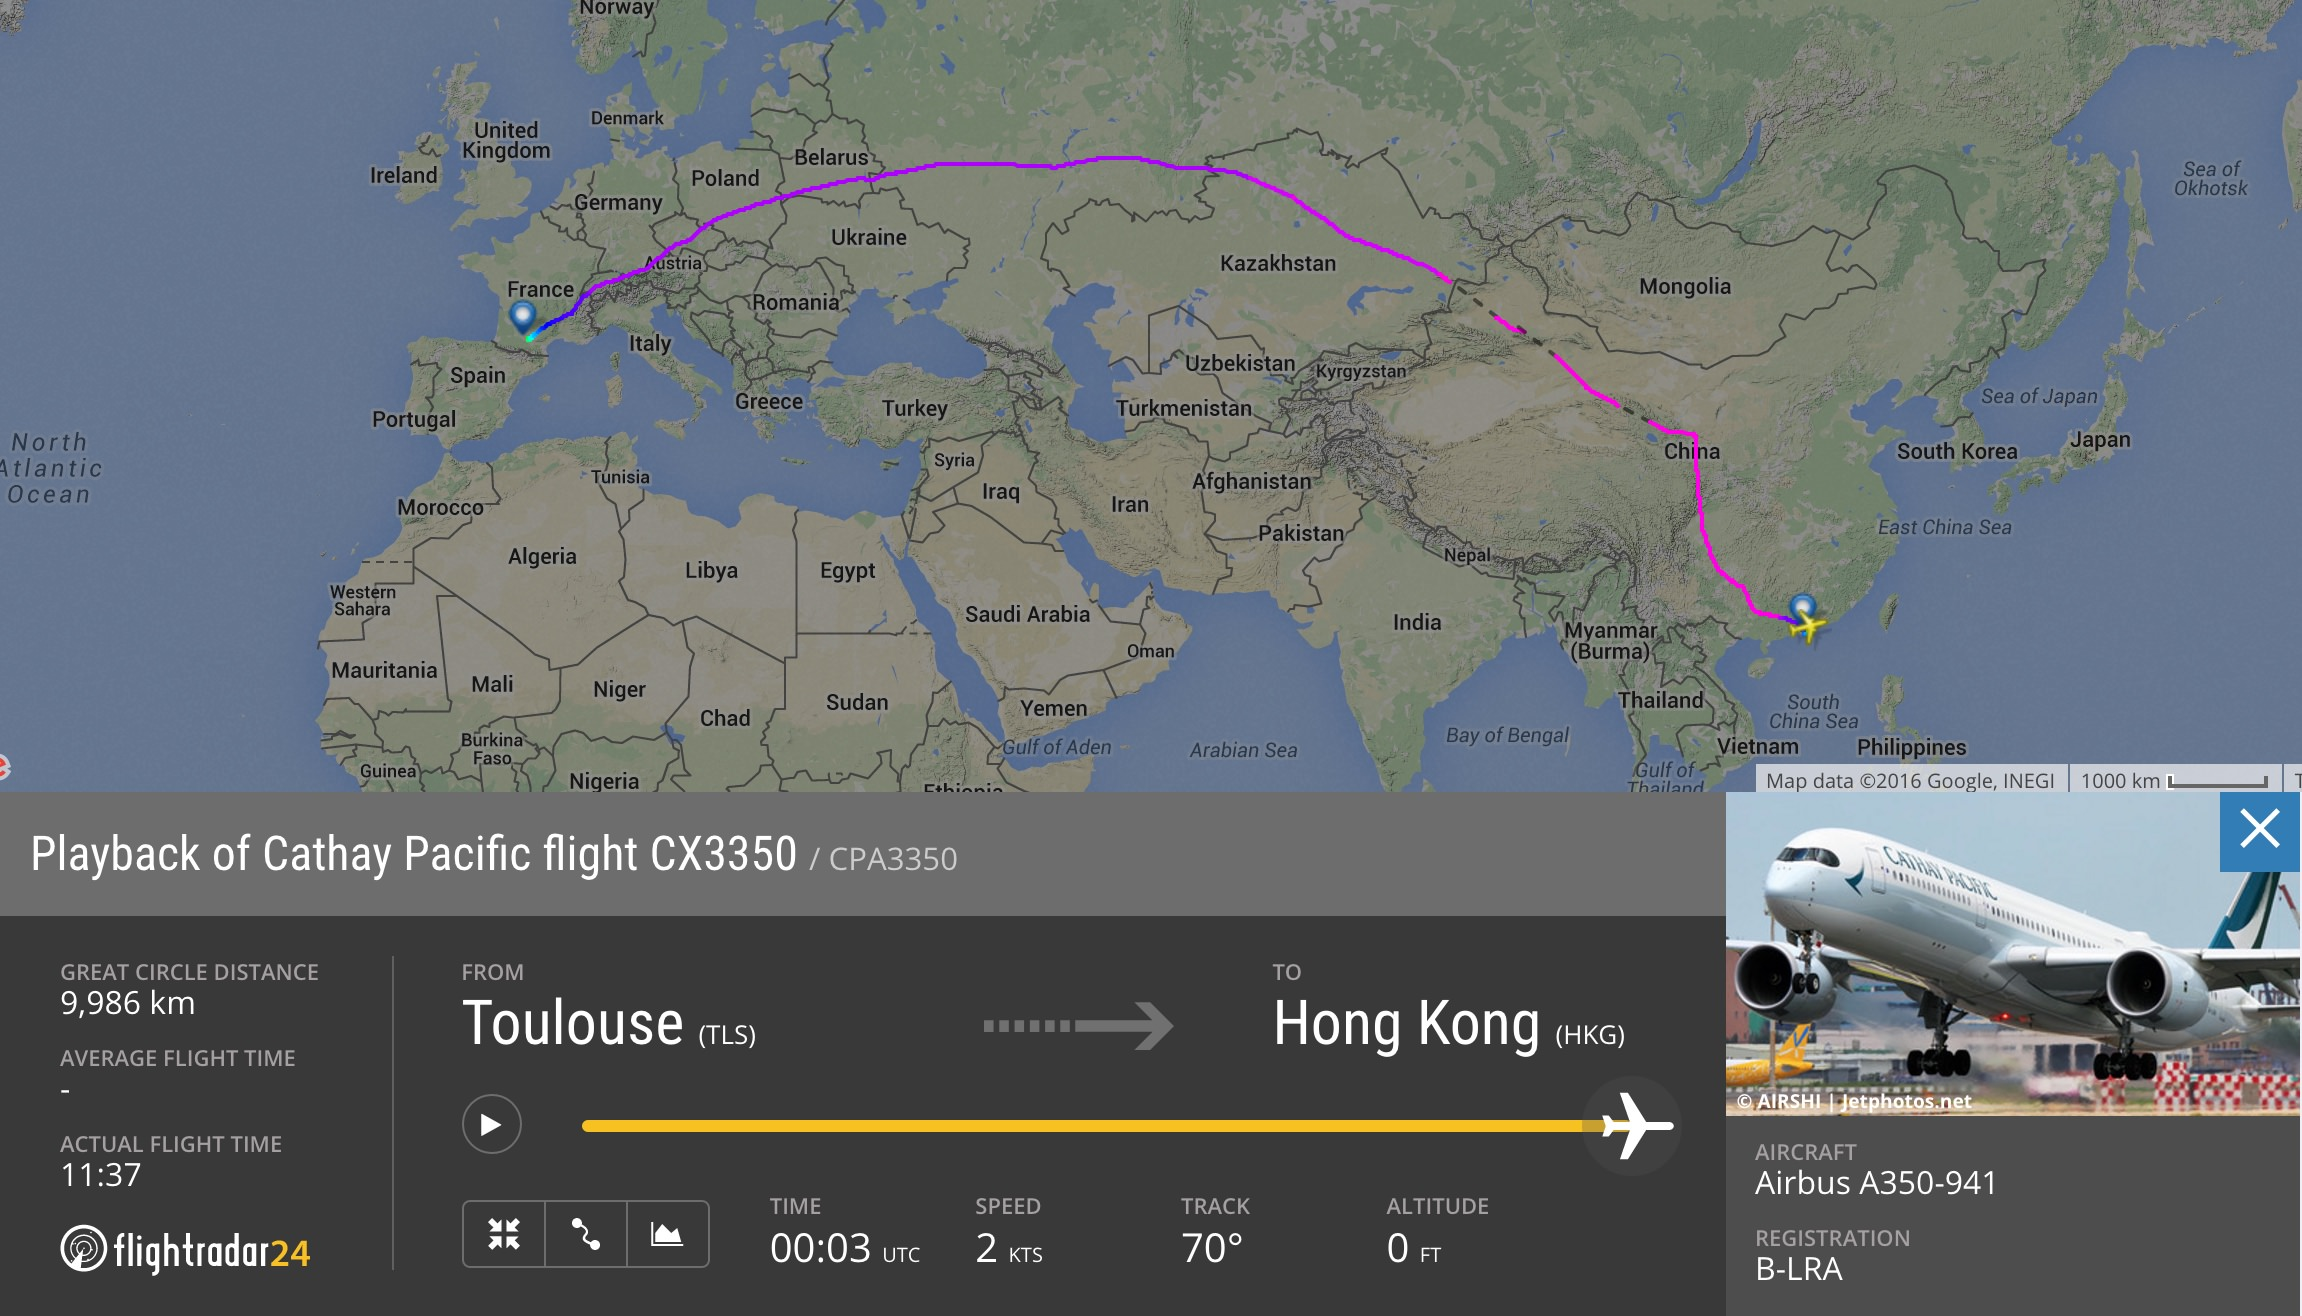 The first Cathay Pacific Airbus A350 delivery flight